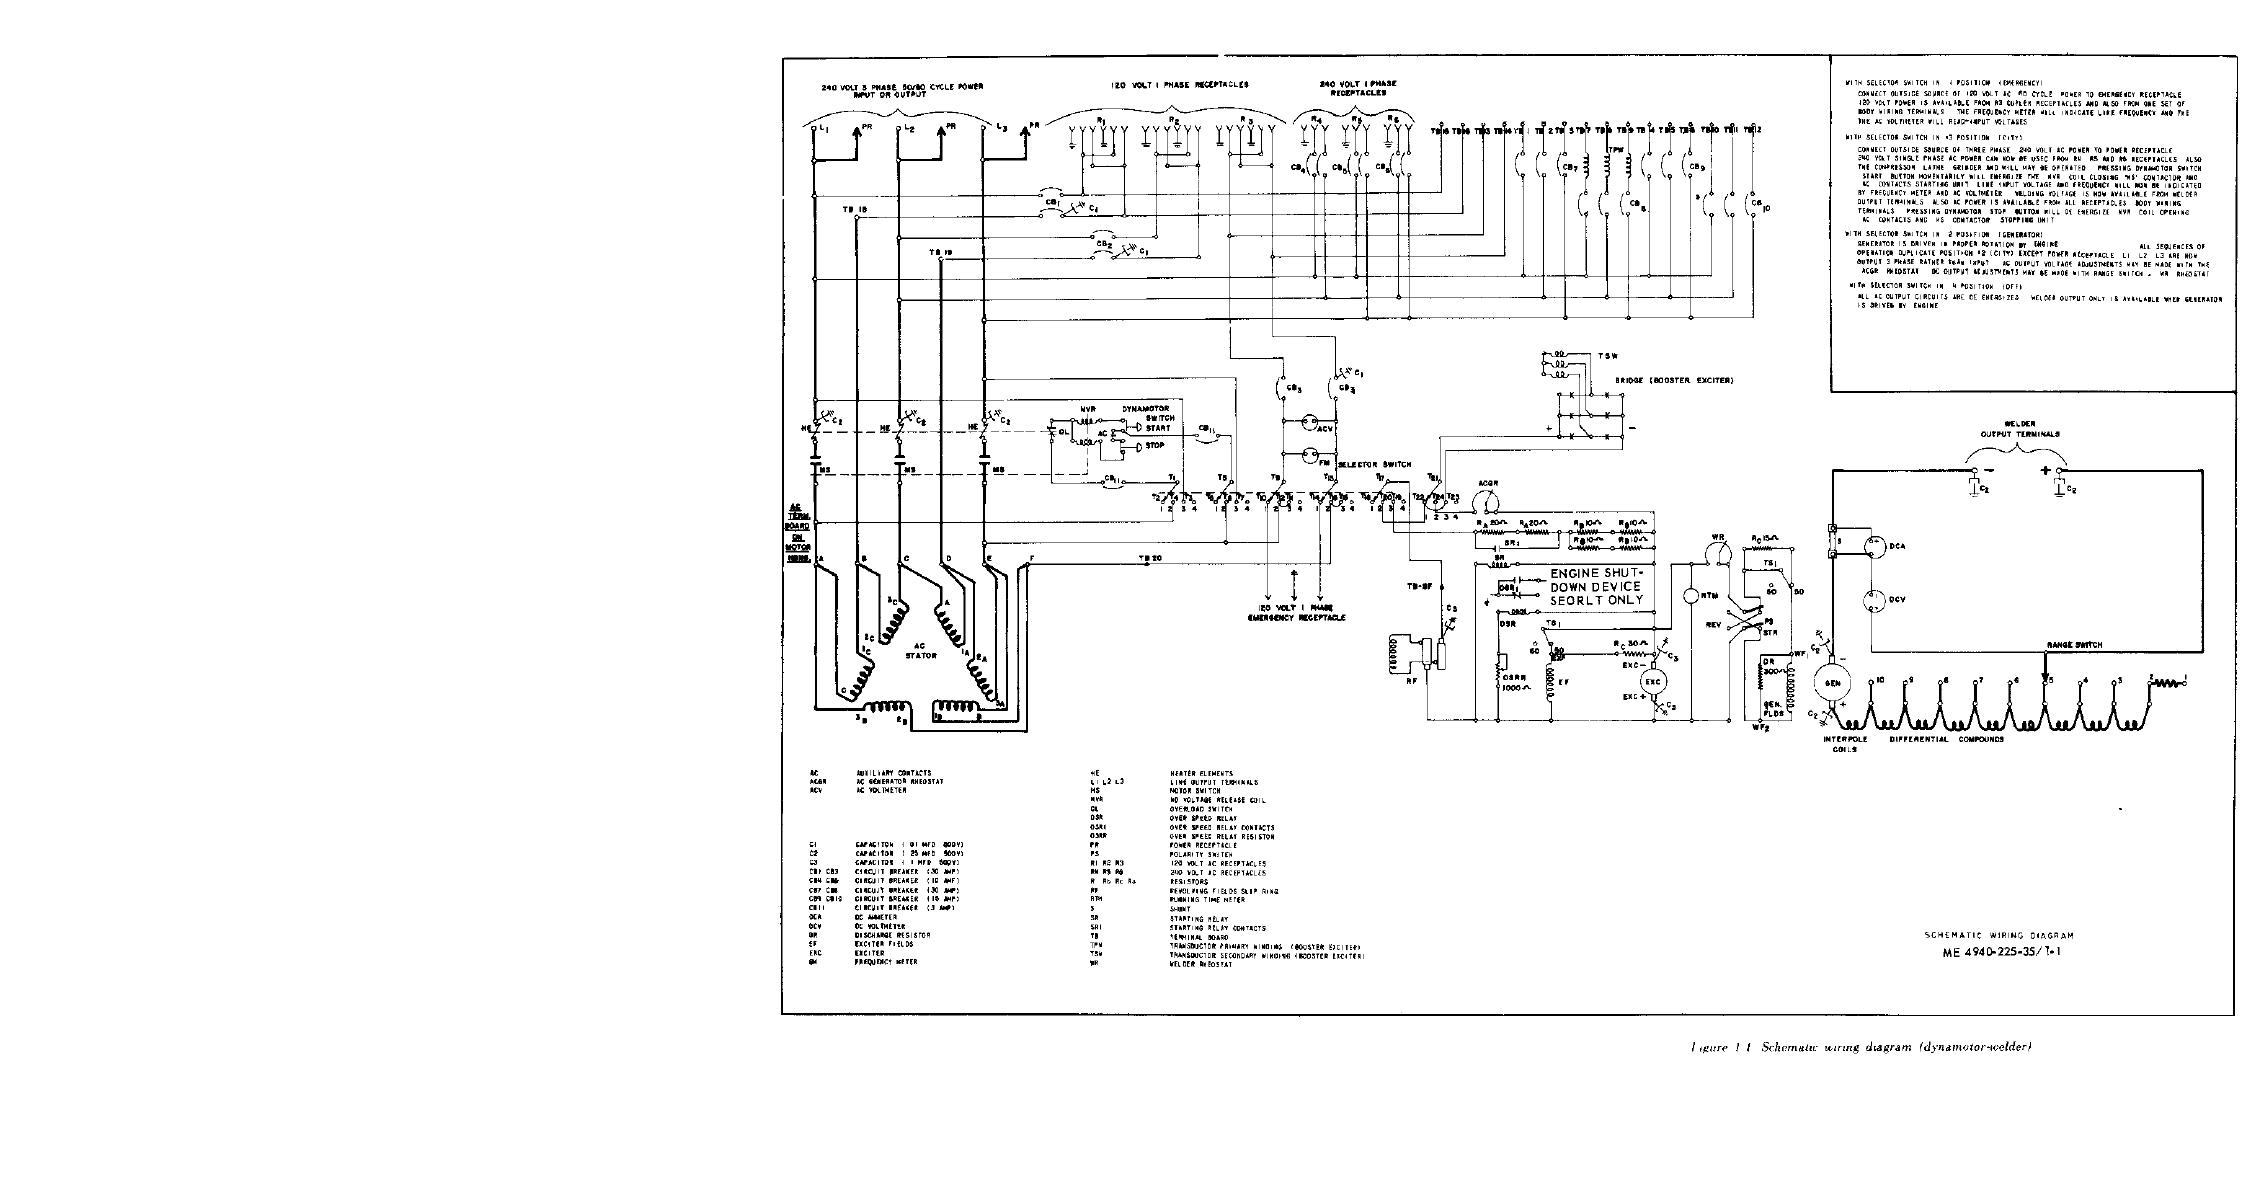 bobcat snowblower wire diagrams - auto electrical wiring diagram on  miller bobcat 250 parts diagram,